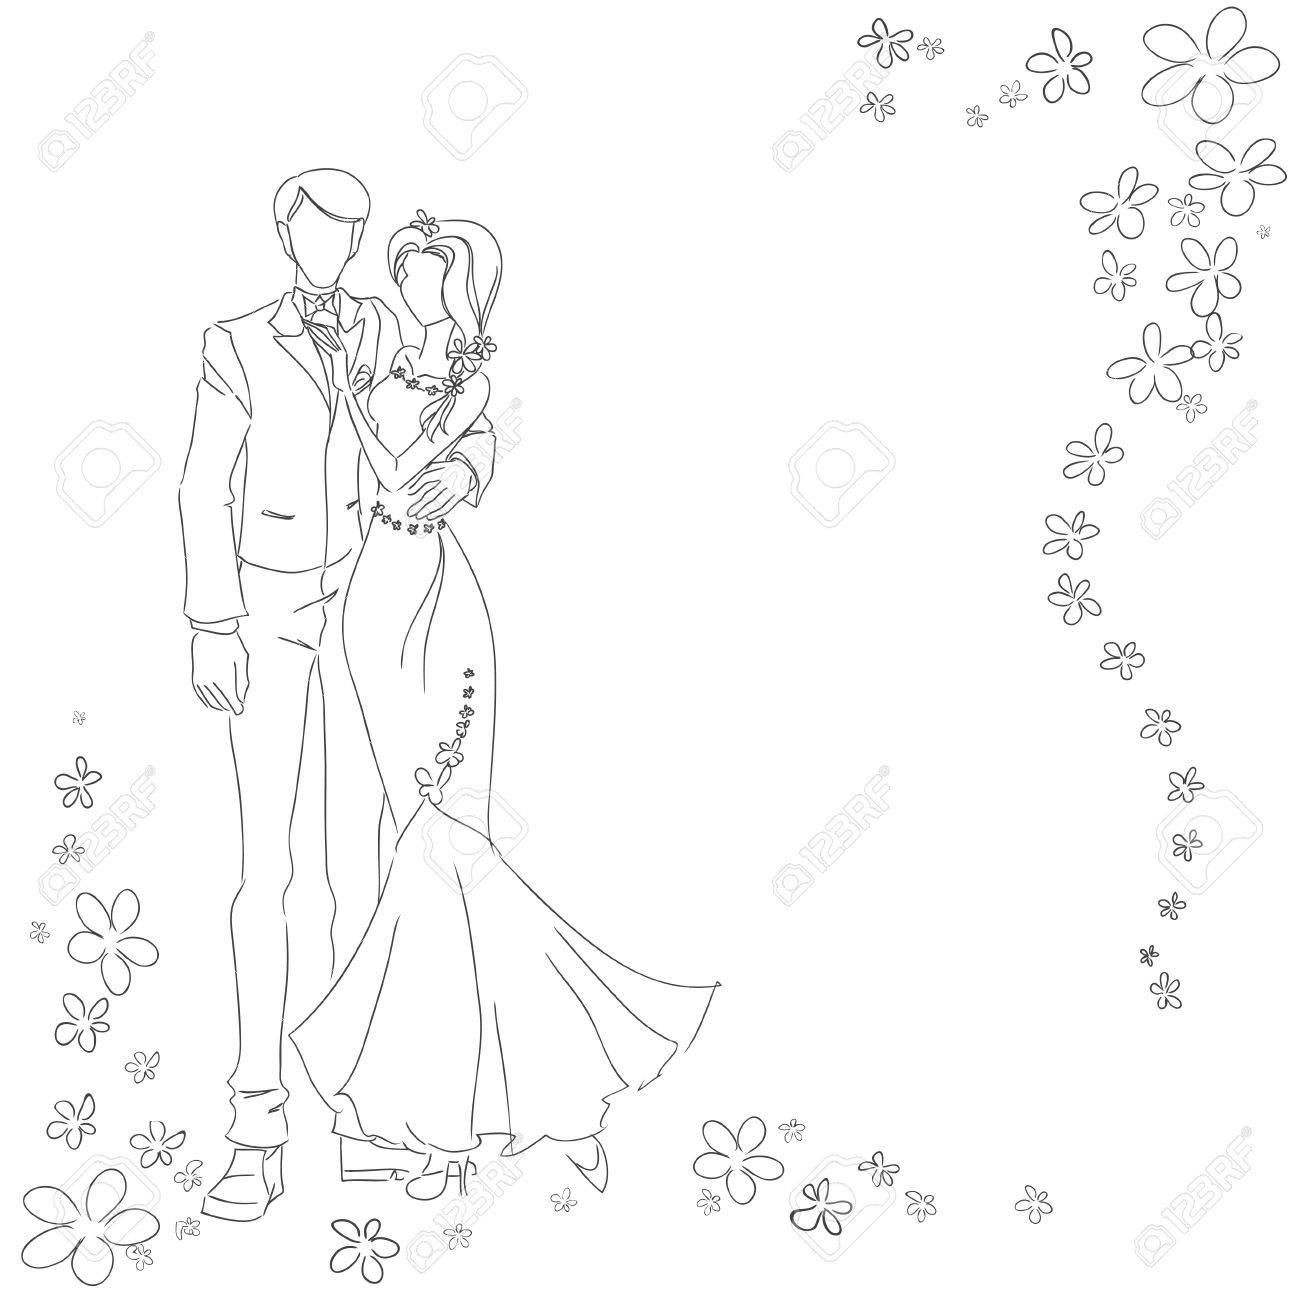 1299x1300 Man And Woman Drawing By Lines. Monochrome Vector Image. Themes